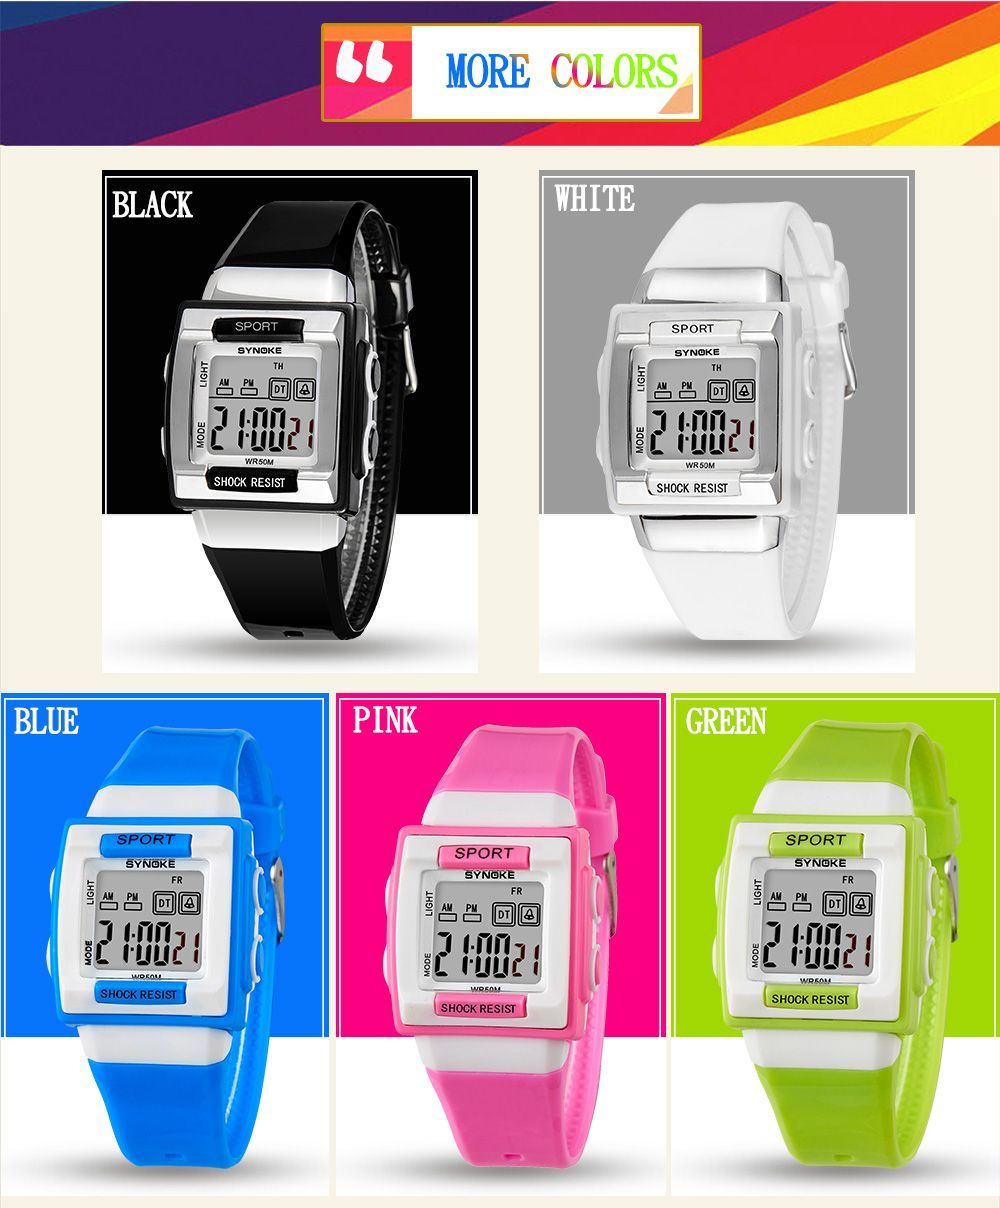 SYNOKE 66188 Youth Multi-function Electronic Watch